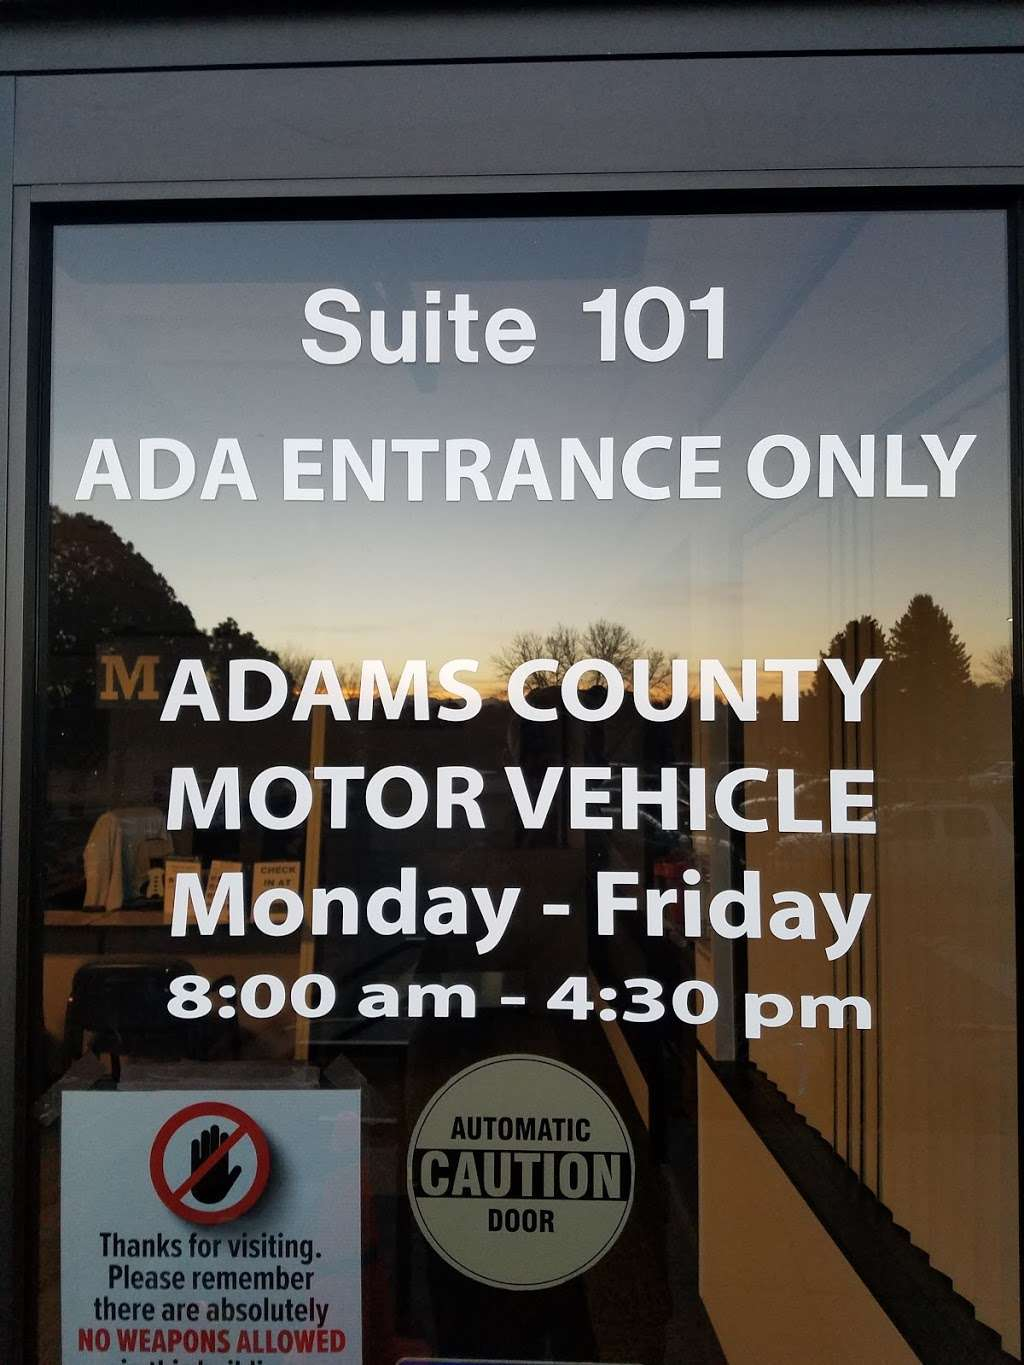 North Pecos Motor Vehicle - local government office  | Photo 4 of 4 | Address: 12200 N Pecos St, Denver, CO 80234, USA | Phone: (720) 523-6010